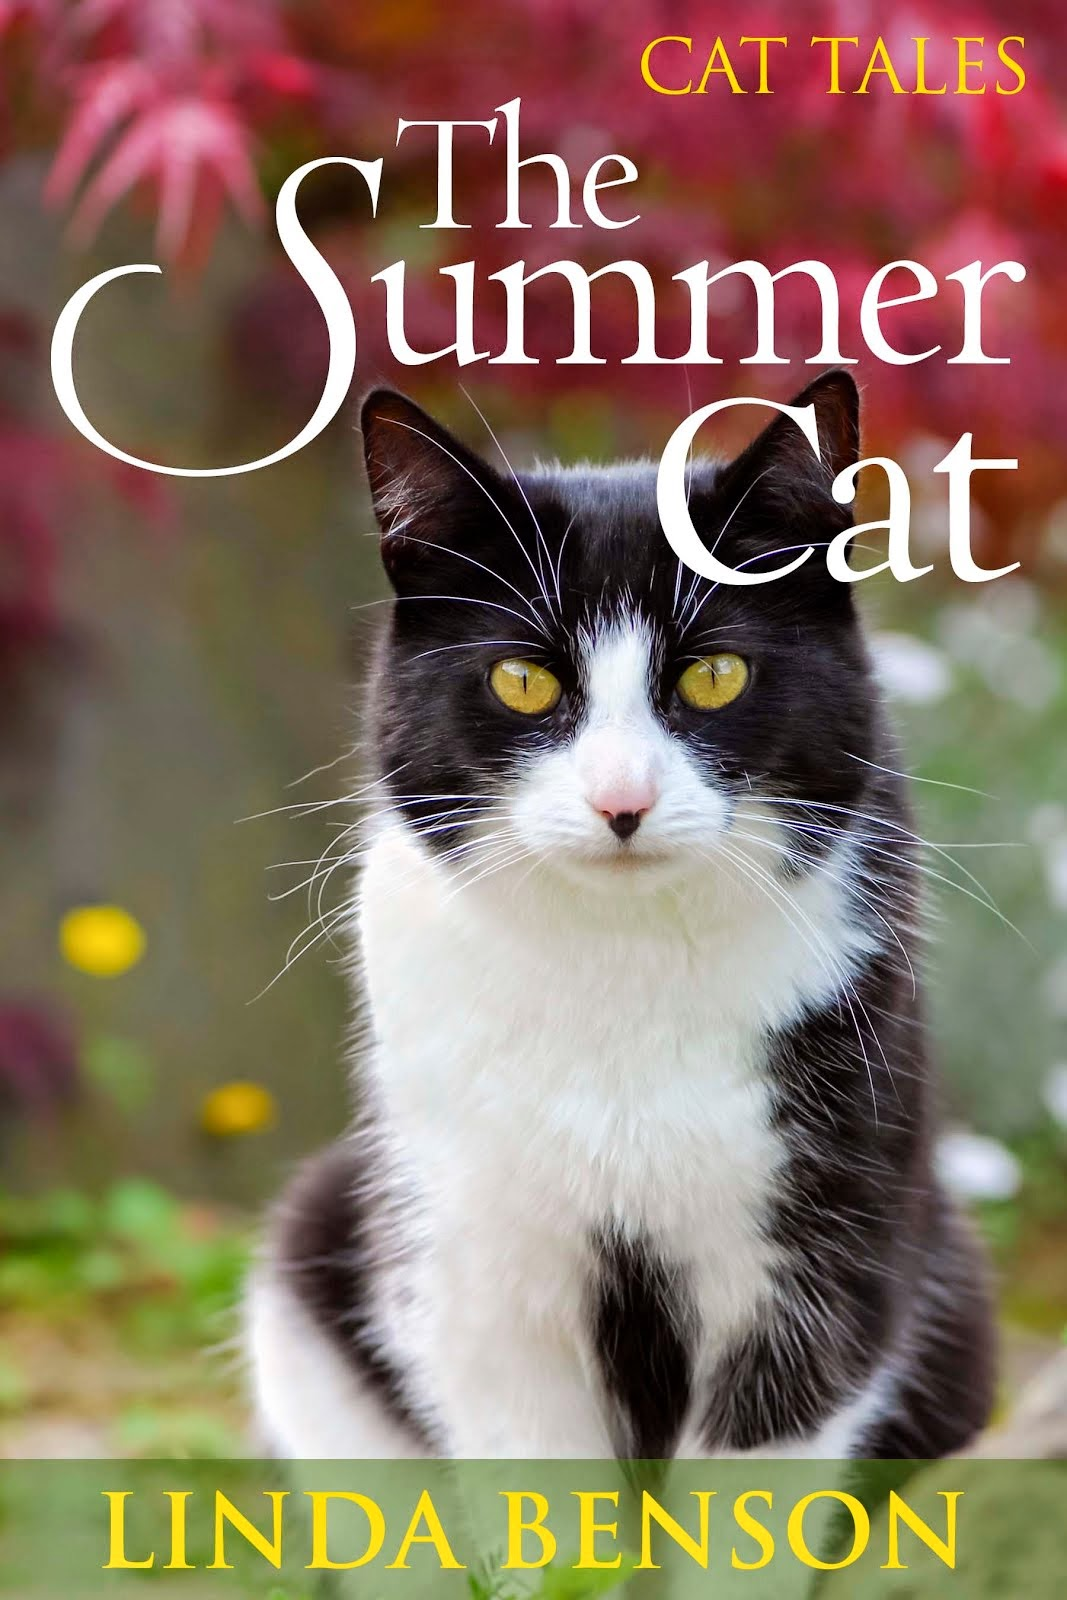 The Summer Cat - only $0.99